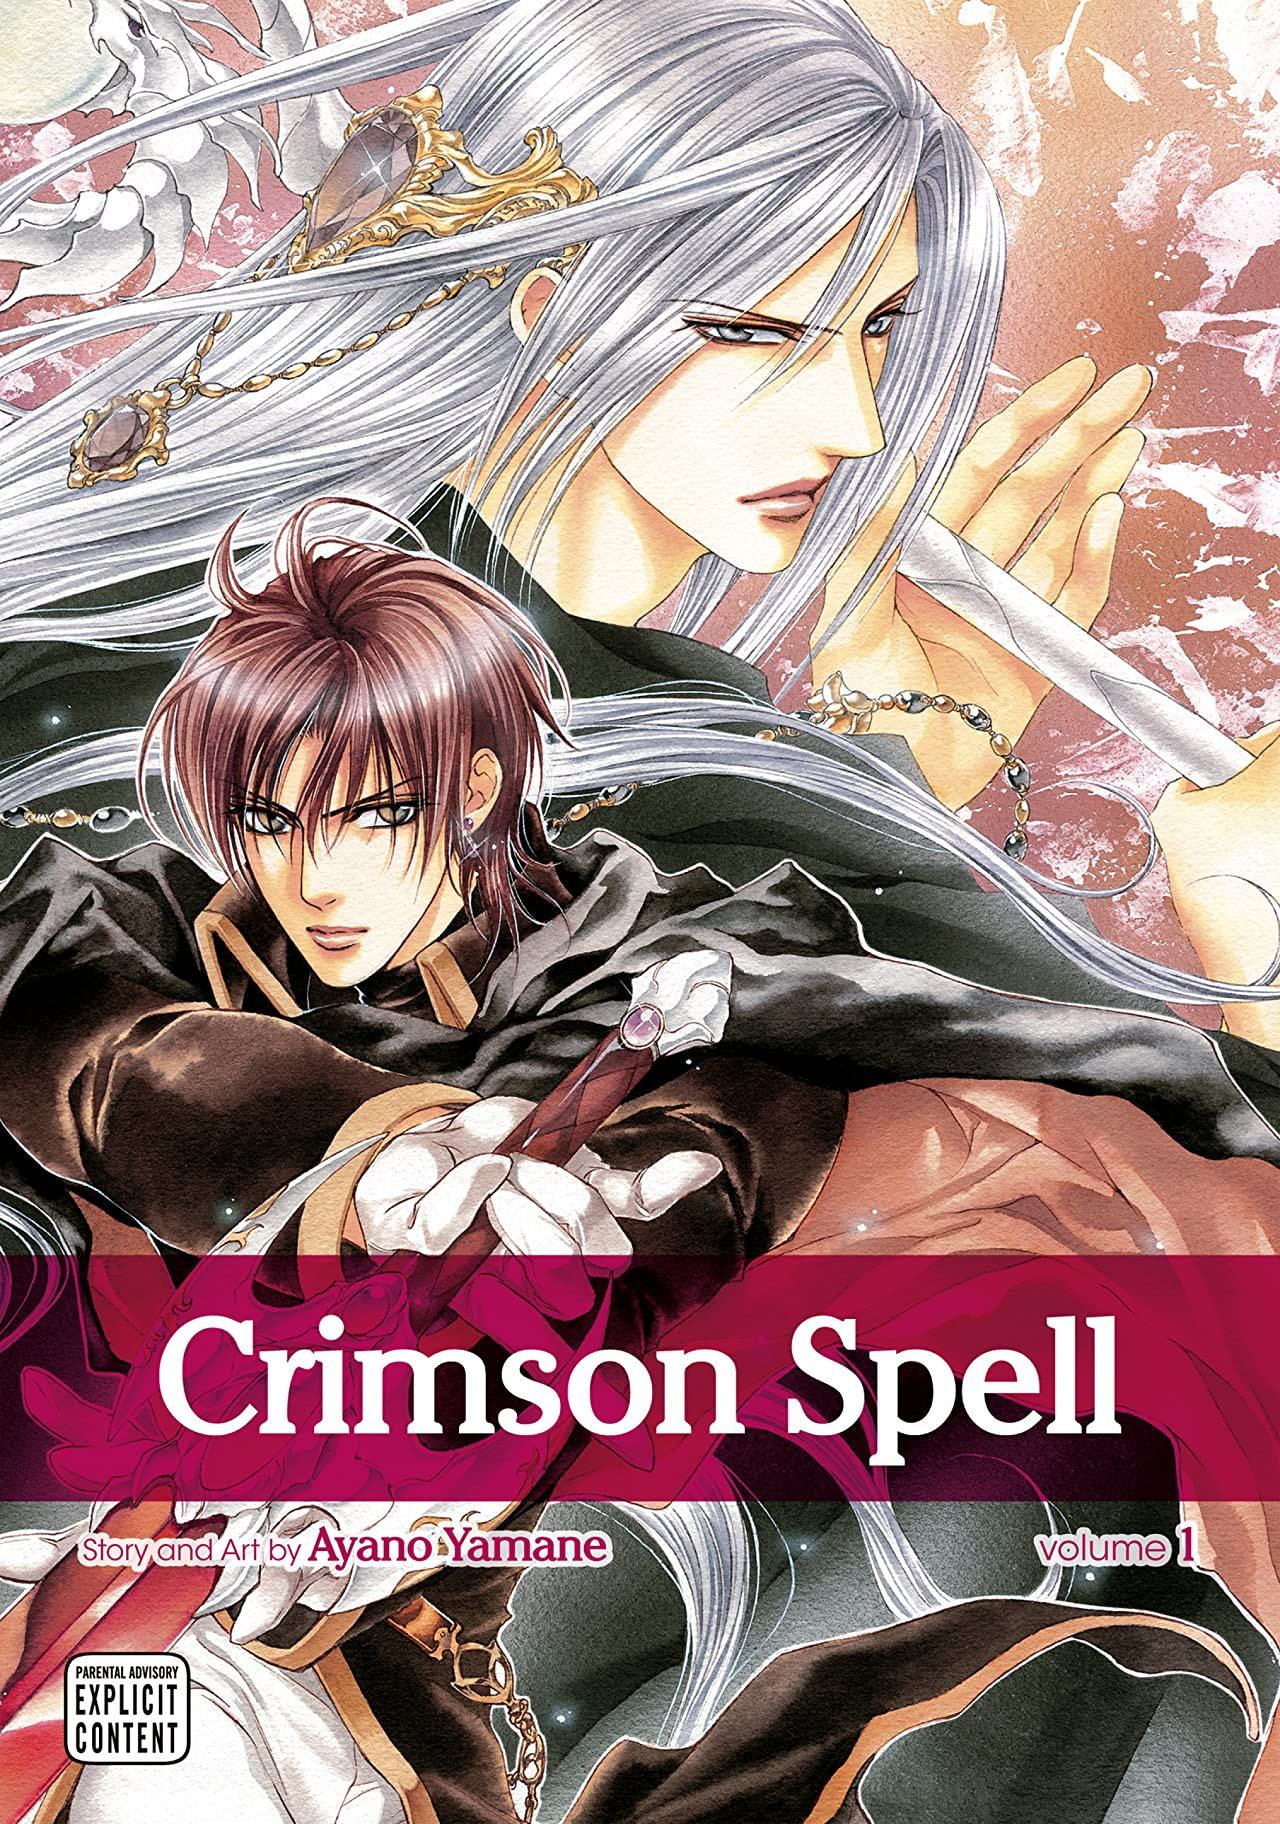 Crimson Spell Vol. 1